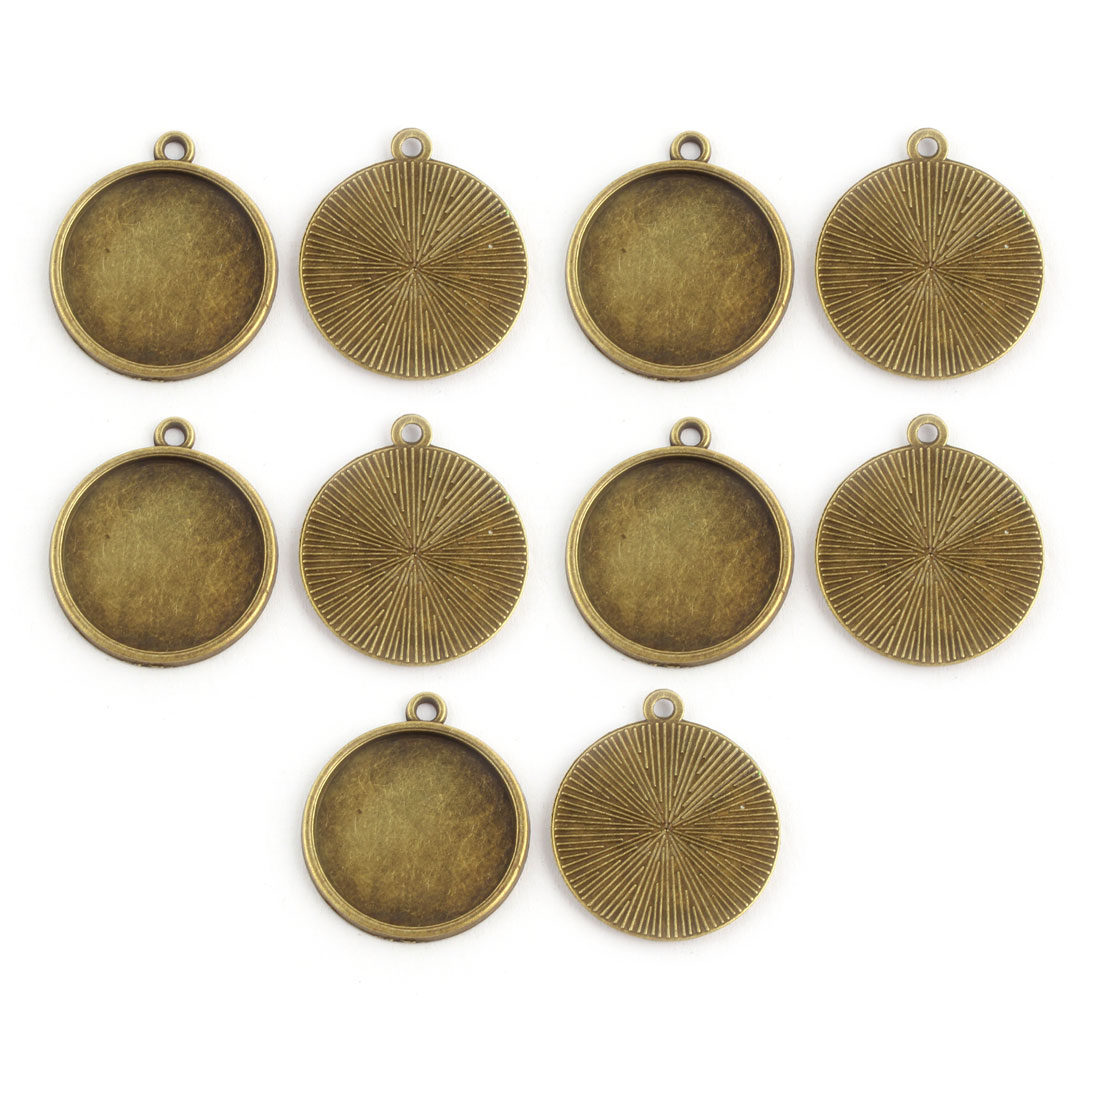 Household Copper Alloy DIY Jewelry Round Pendant Trays Brass Tone 20mm Inner Dia 10 Pcs